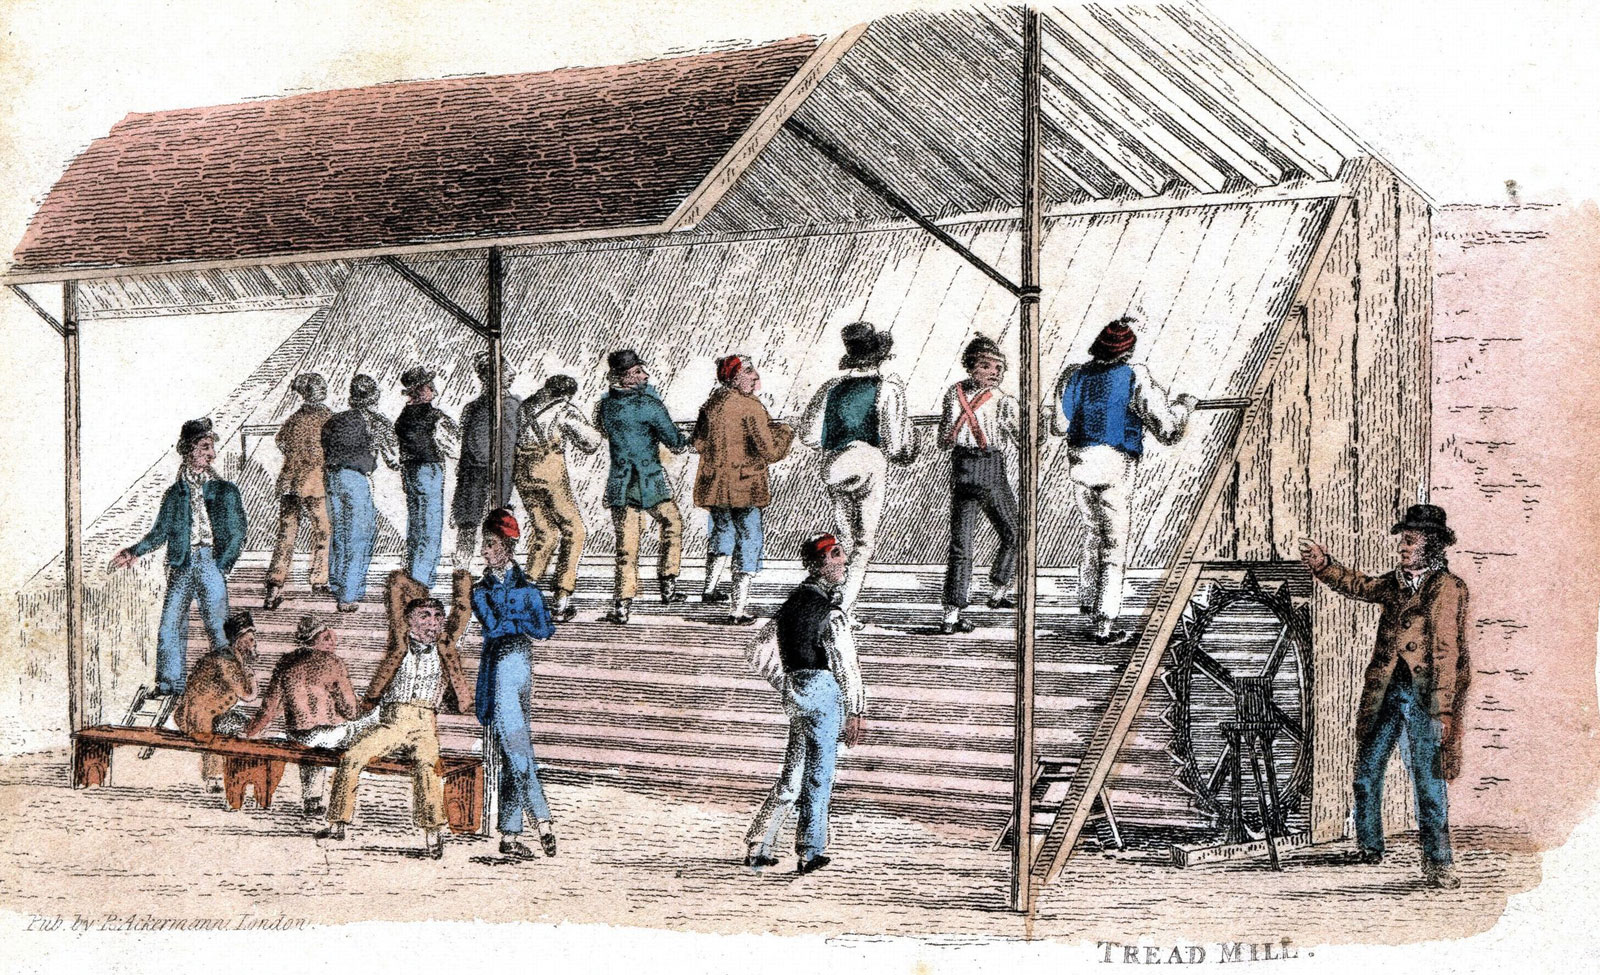 Inmates on a penal treadmill at Brixton prison in London, England,c.1827. (C) Photos.com/Jupiterimages